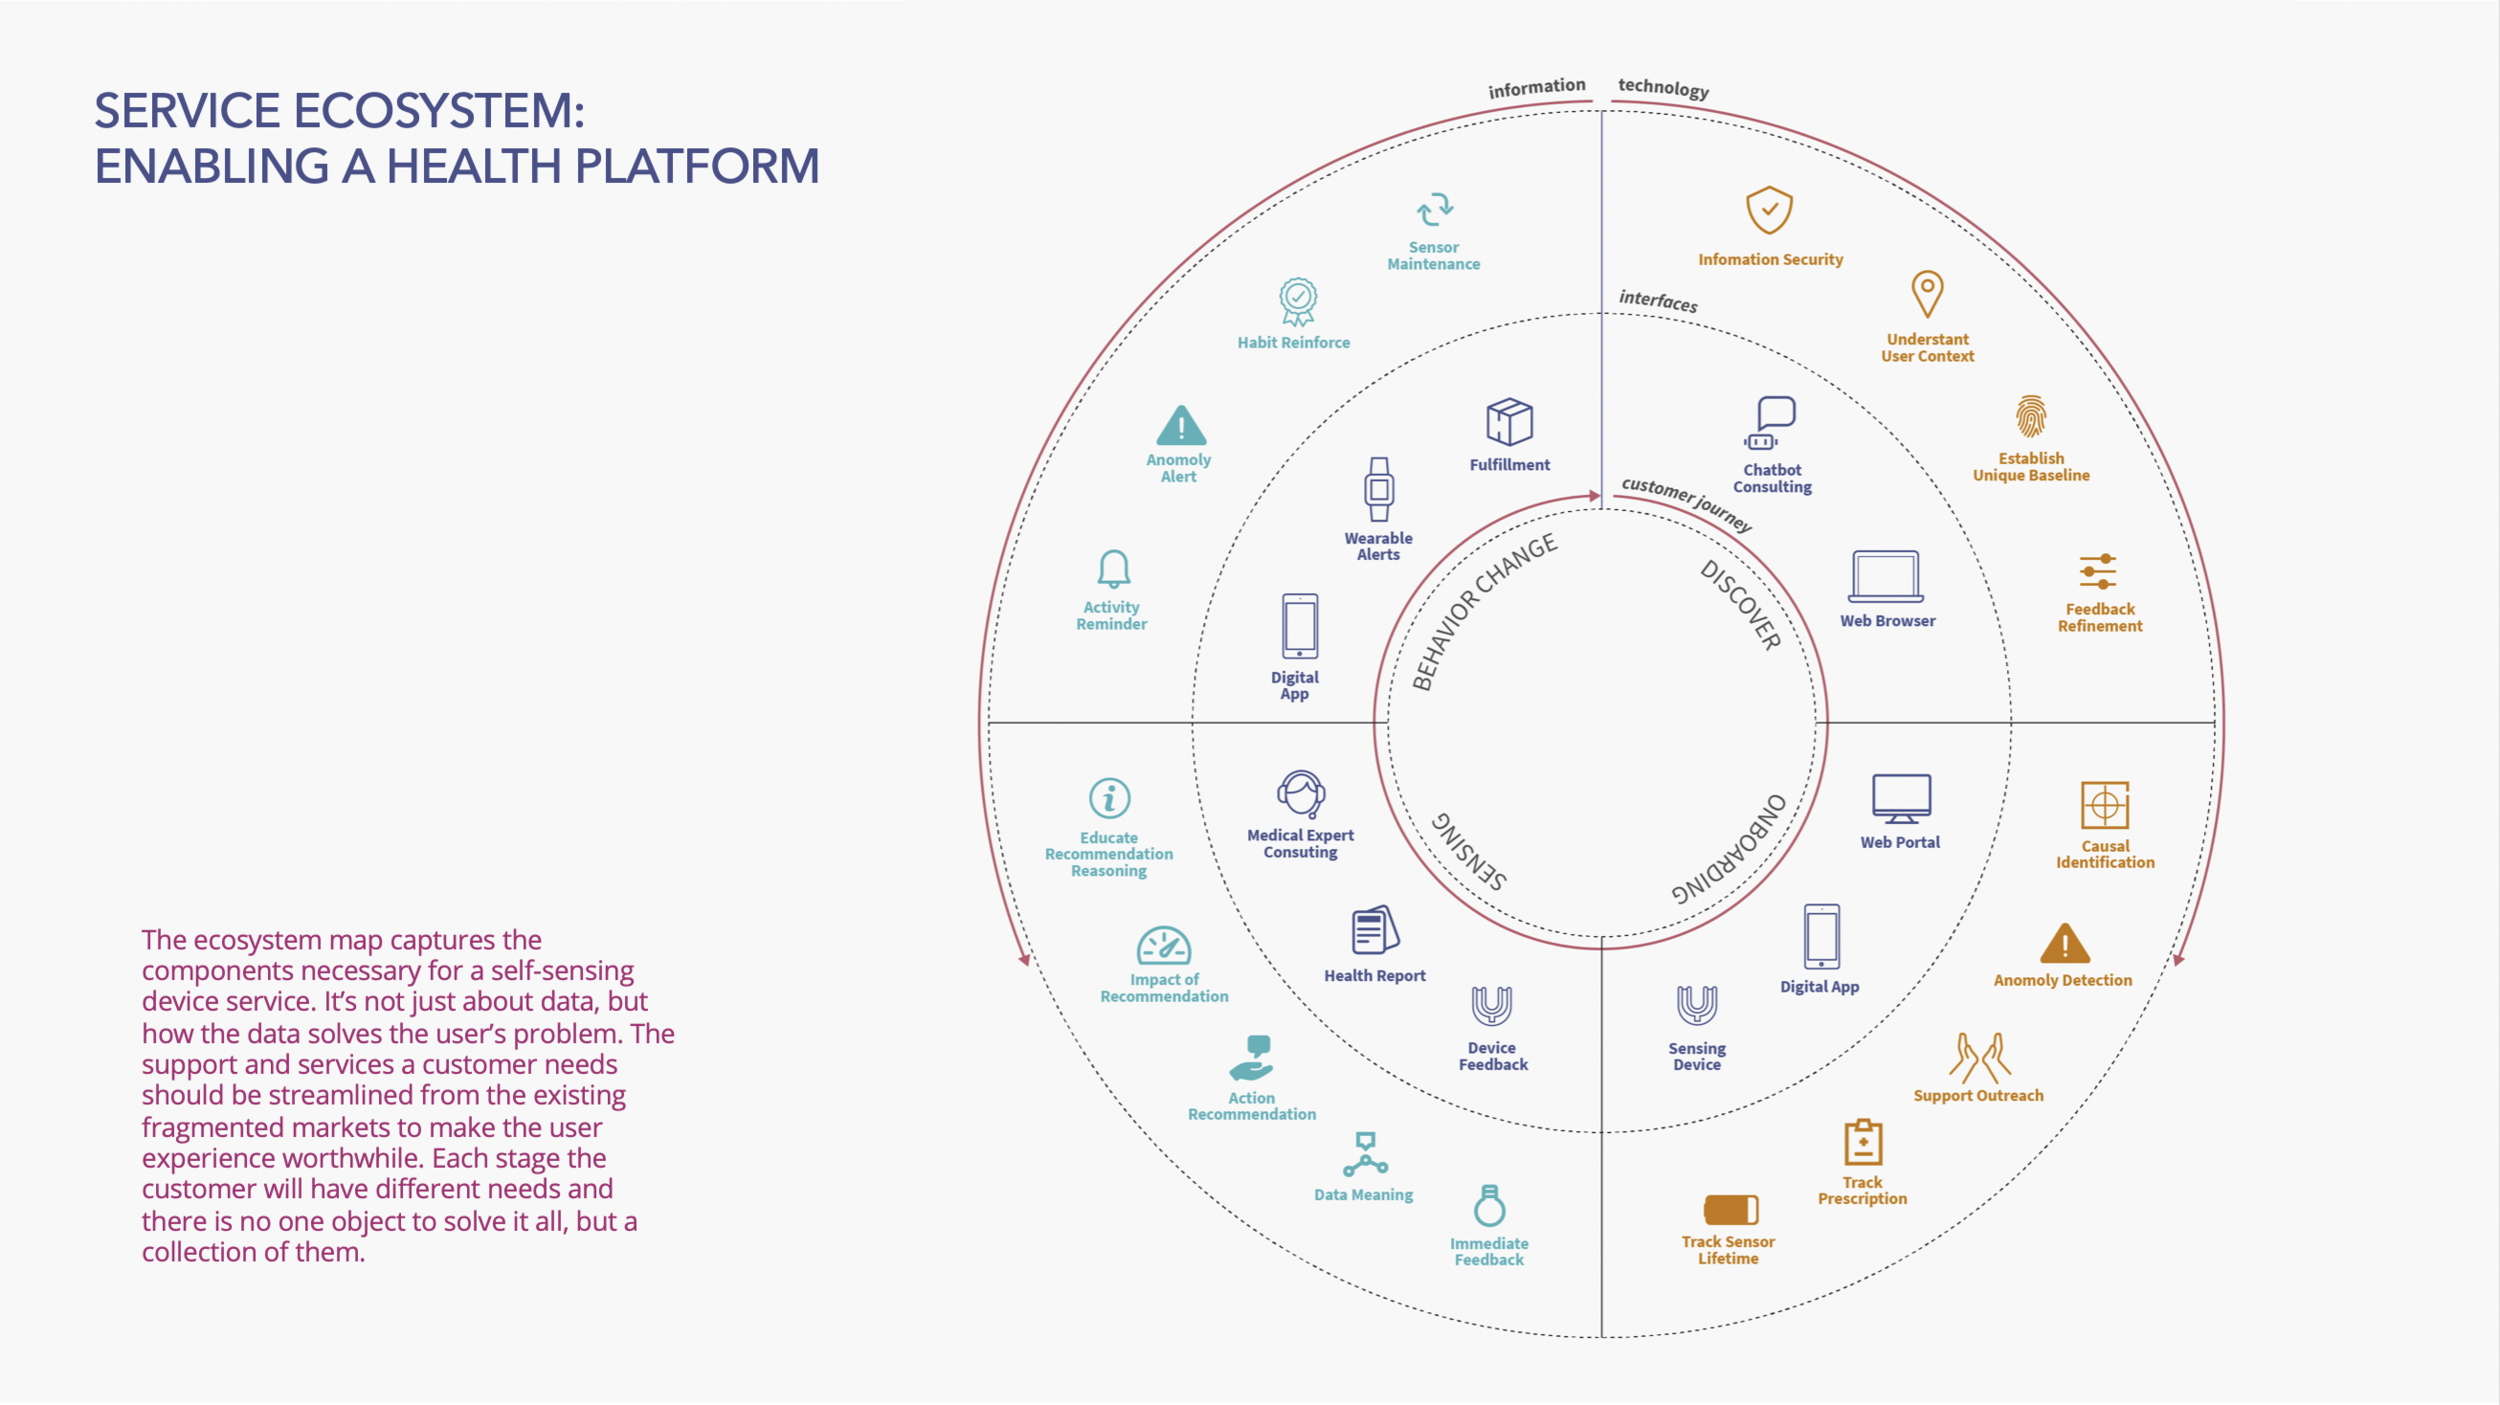 Outlines the ecosystem map including the components we see are essential to the platform at various stages of the user journey.